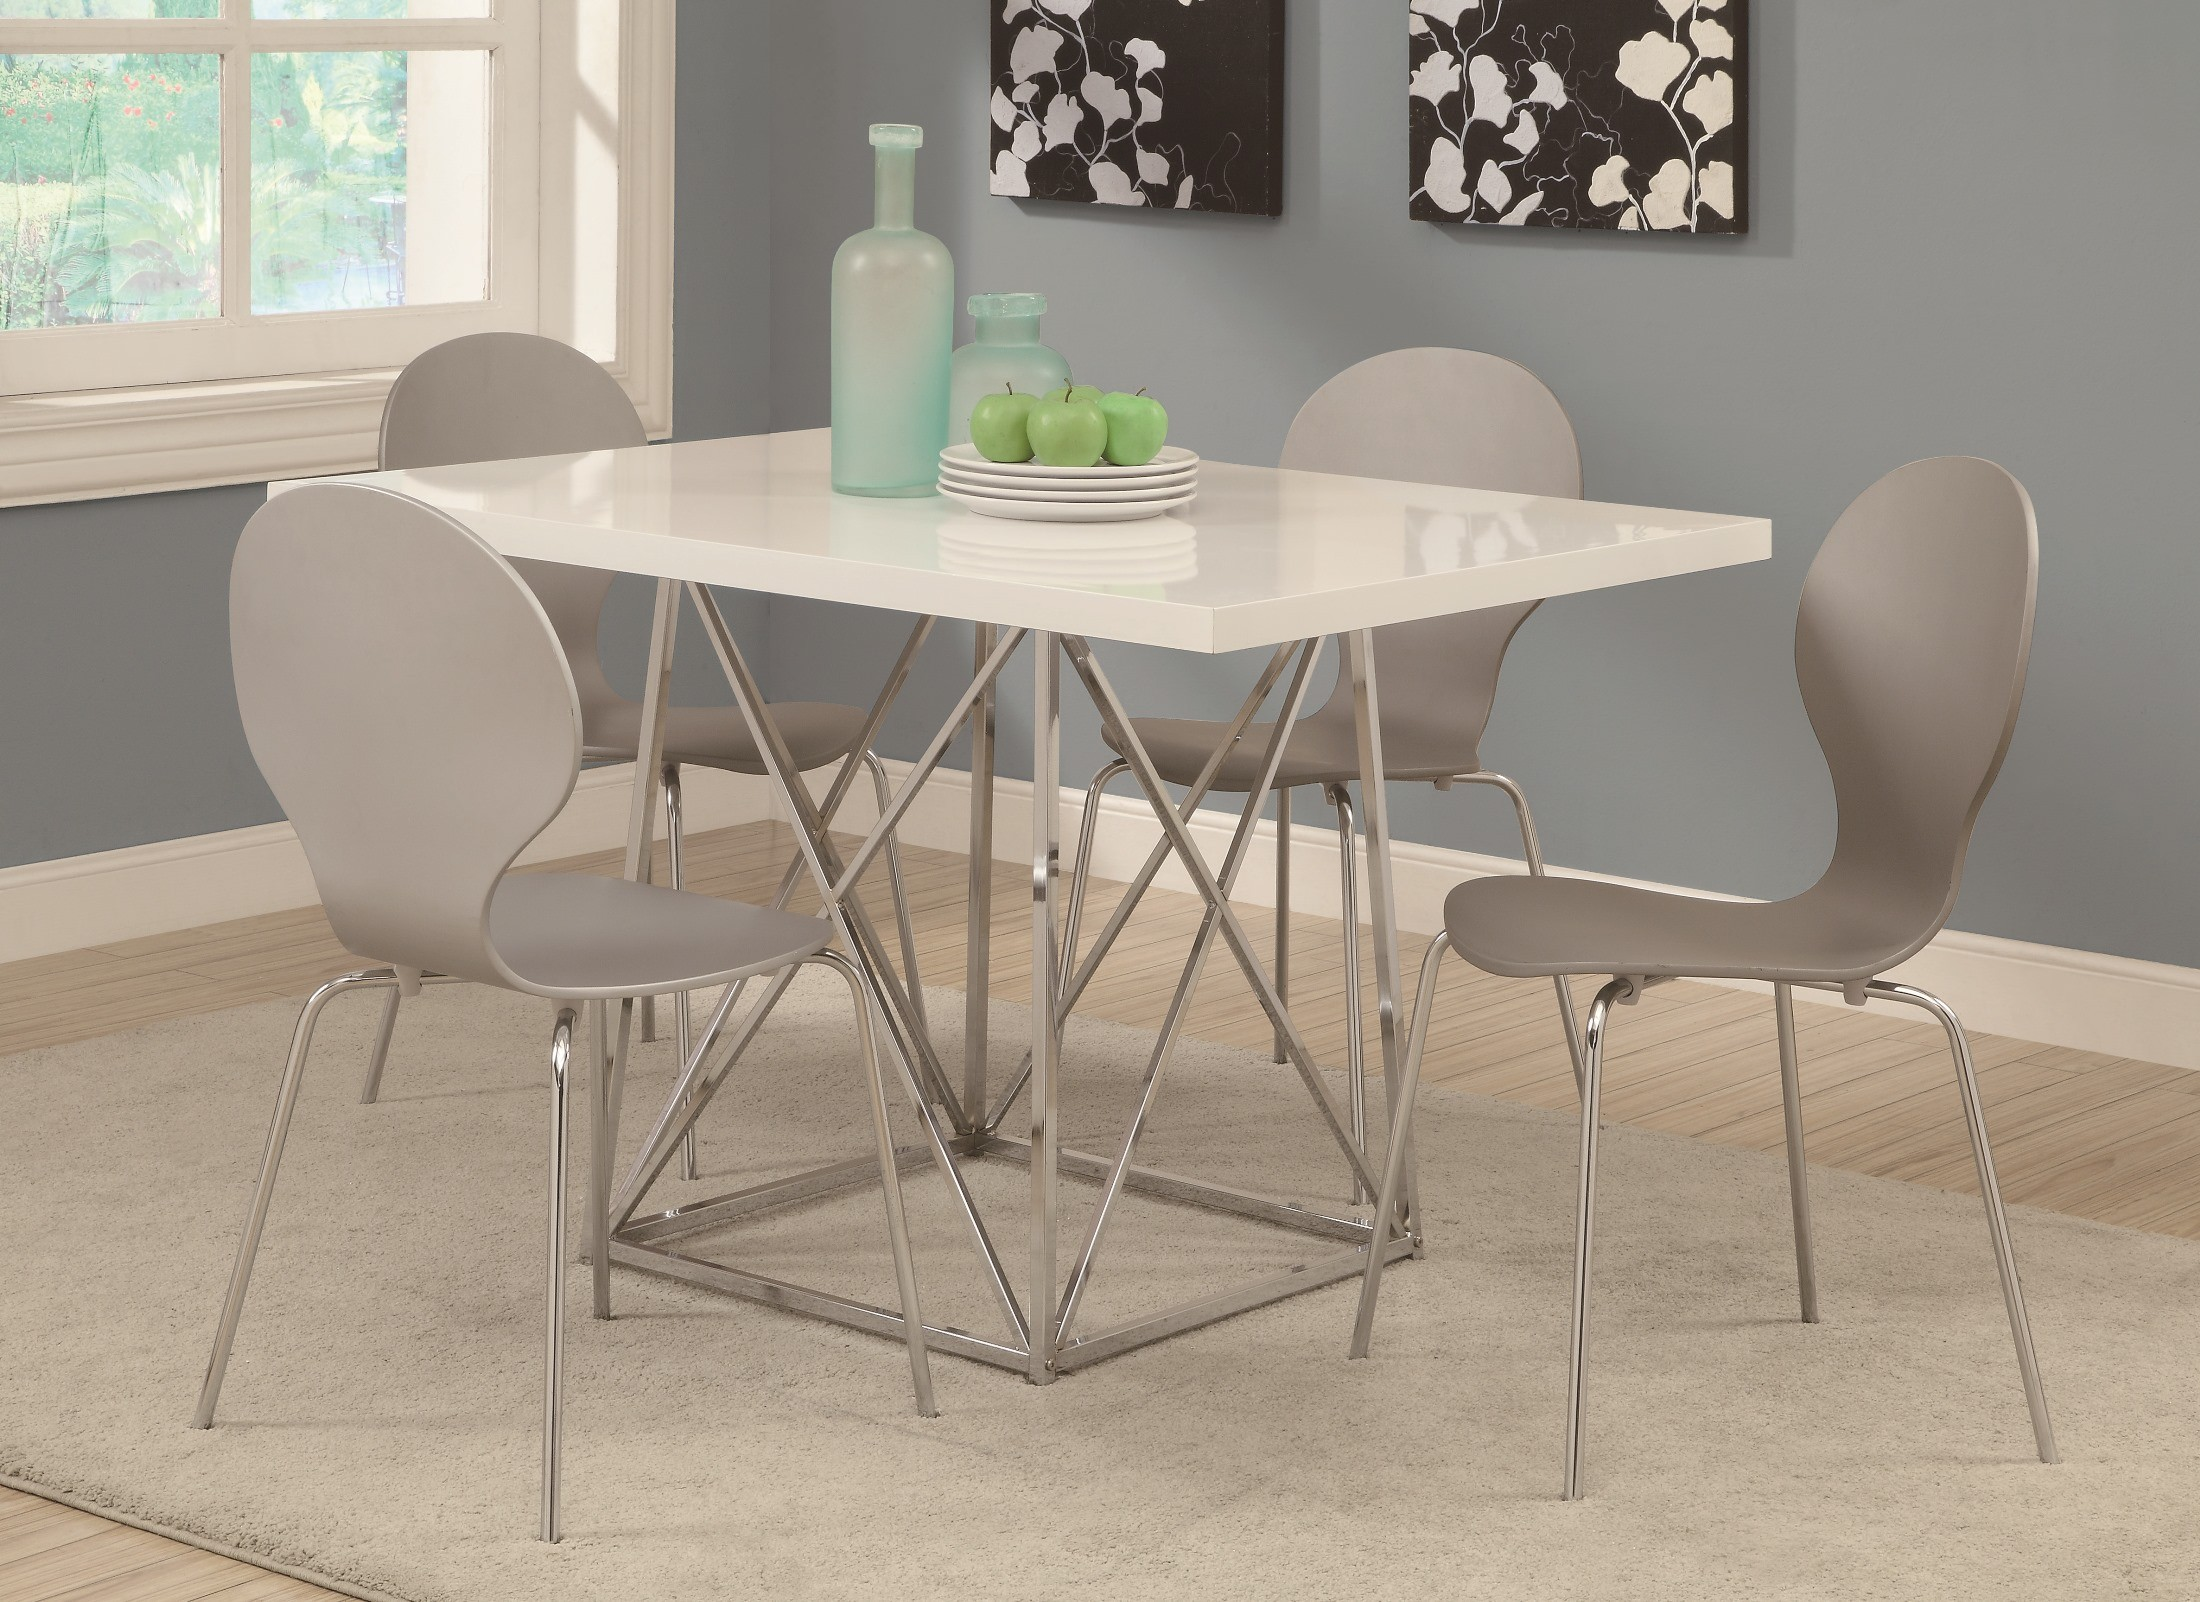 1046 white glossy chrome metal dining table from monarch - White metal dining table ...